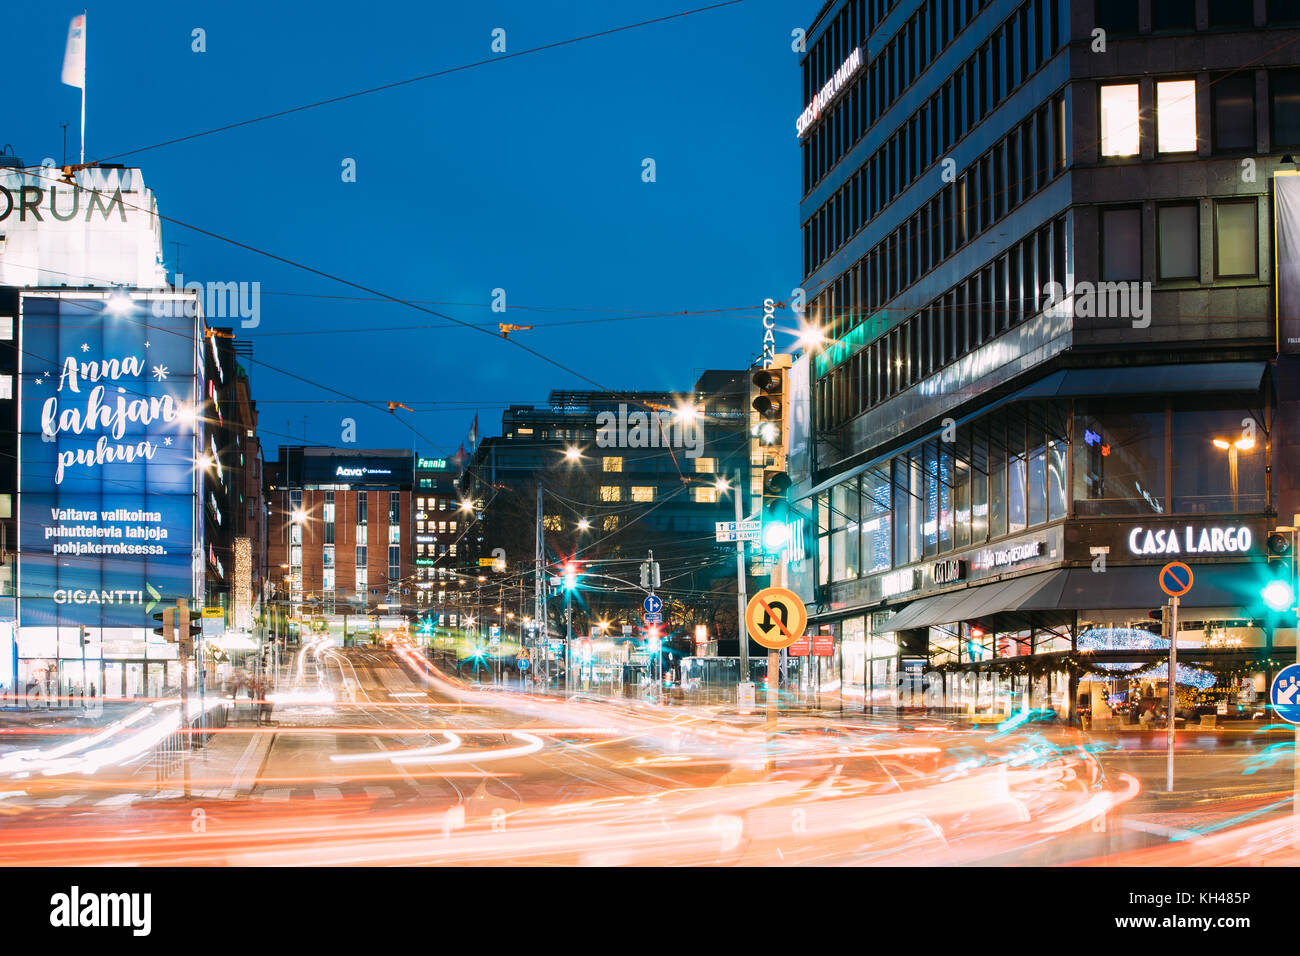 Helsinki, Finland - December 7, 2016: Night View Of Traffic Light Trails In Kaivokatu Street In Evening Or Night - Stock Image